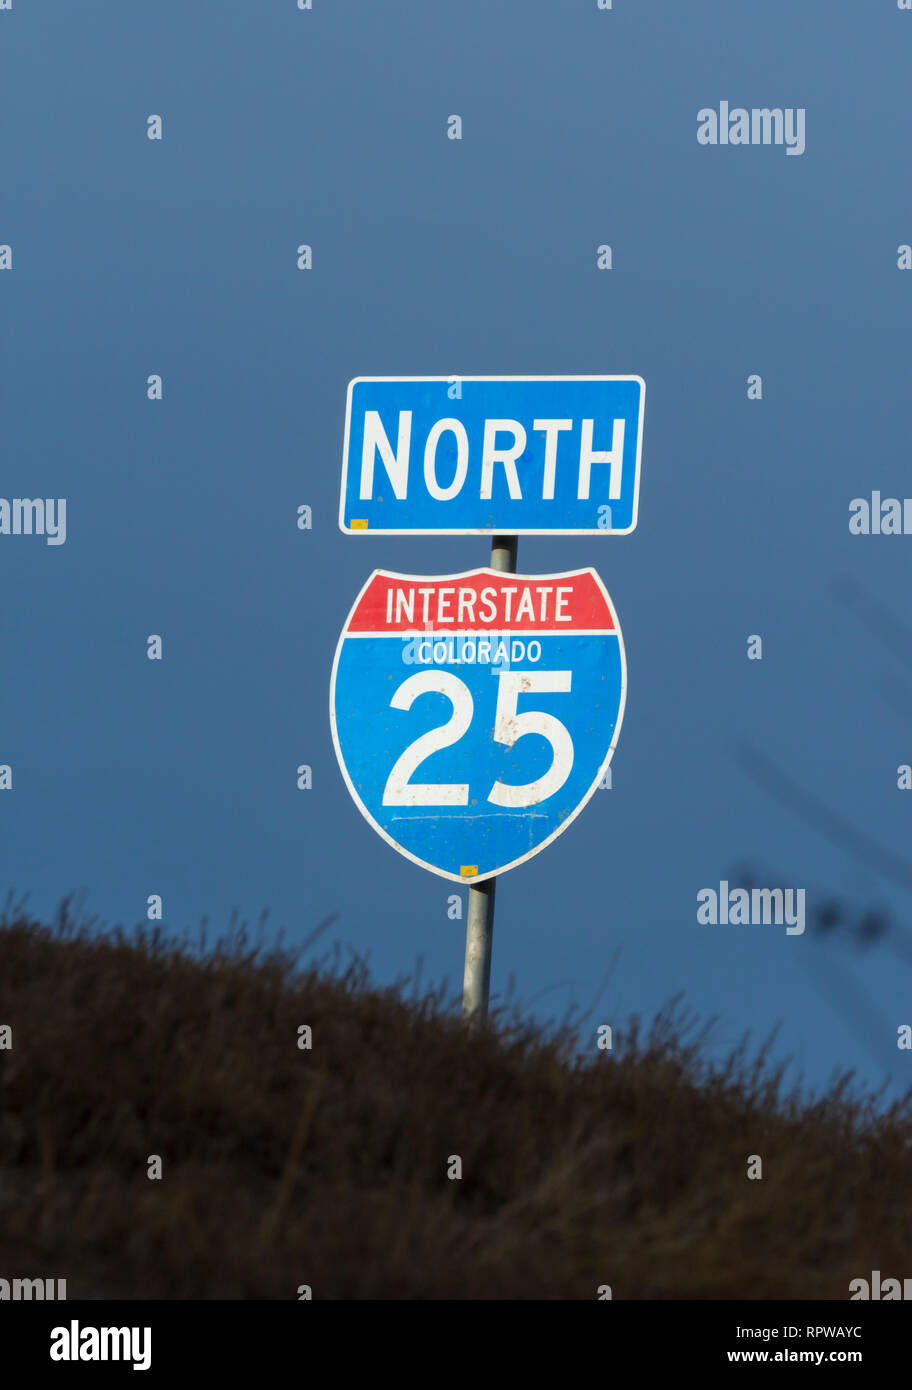 United States interstate highway system road sign in evening light photographed near Castle Rock Colorado US. Photo taken in February. - Stock Image